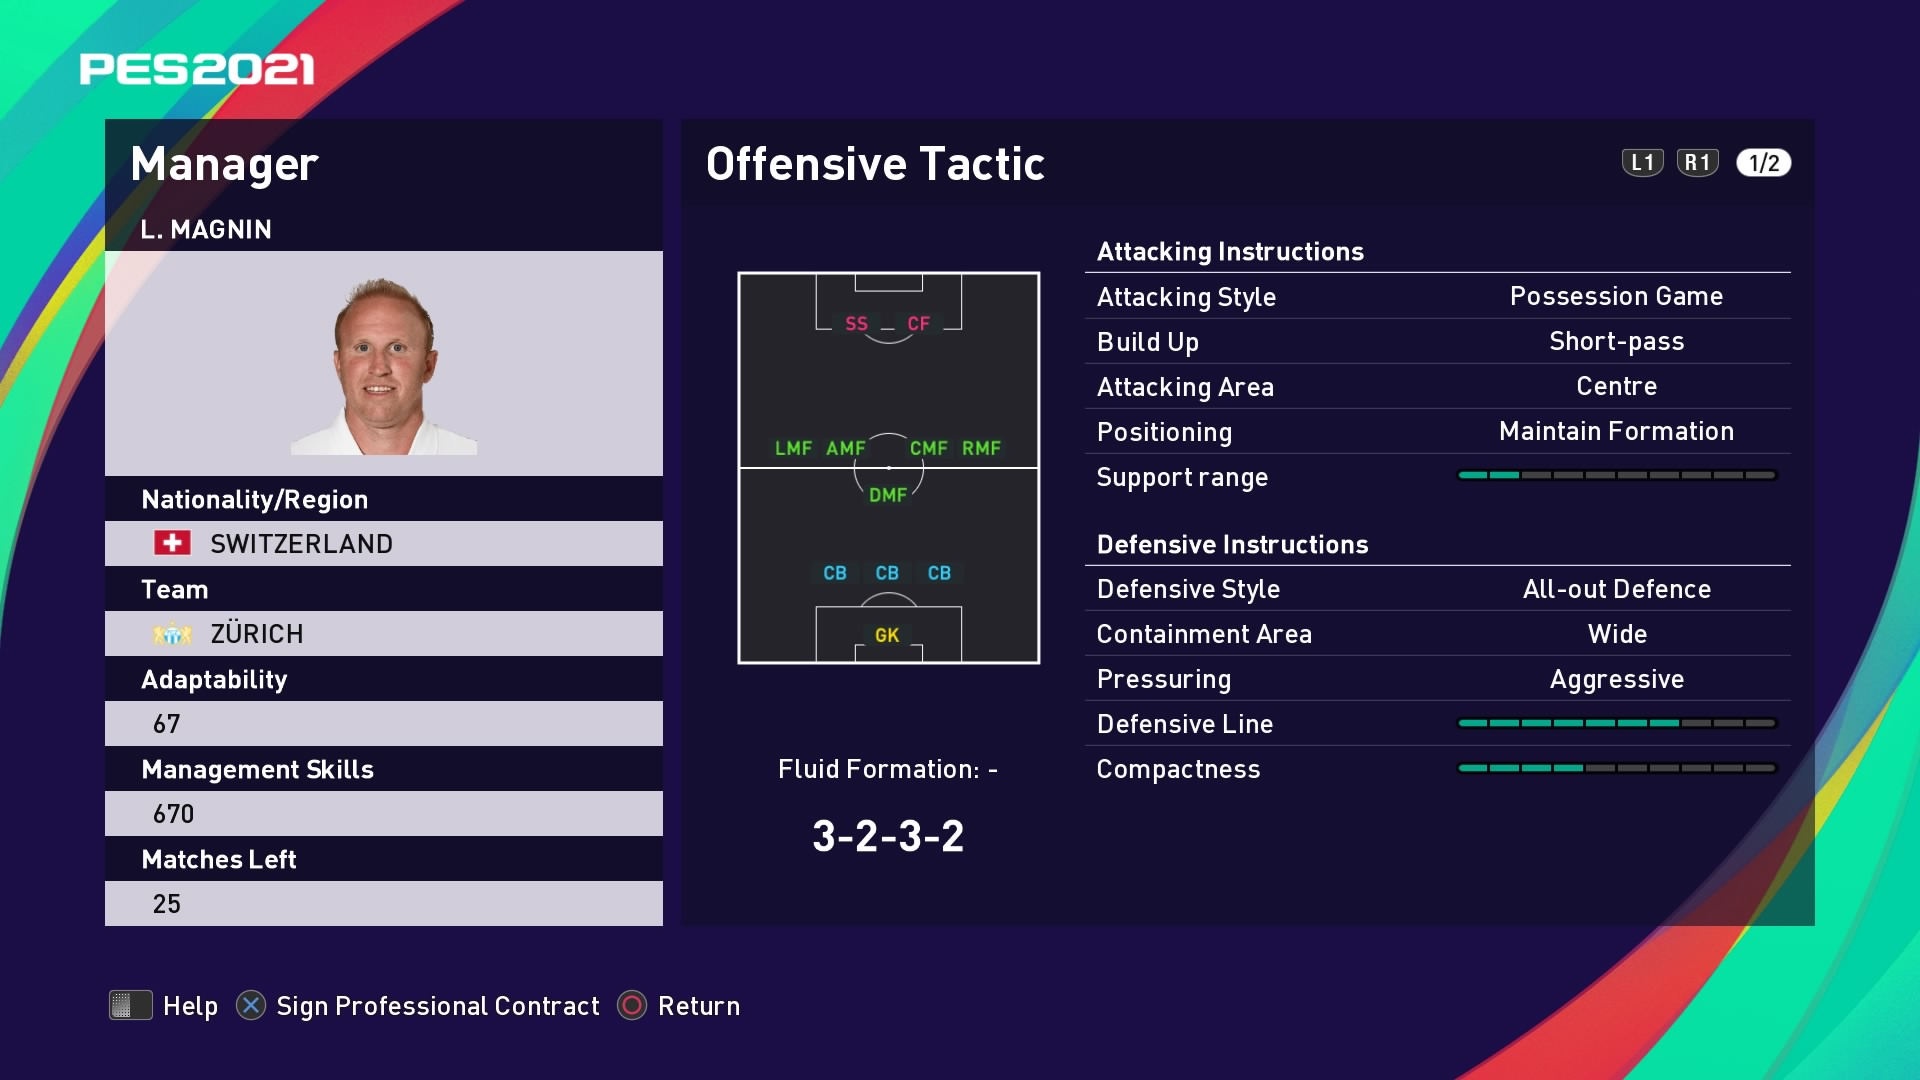 L. Magnin (Ludovic Magnin) Offensive Tactic in PES 2021 myClub